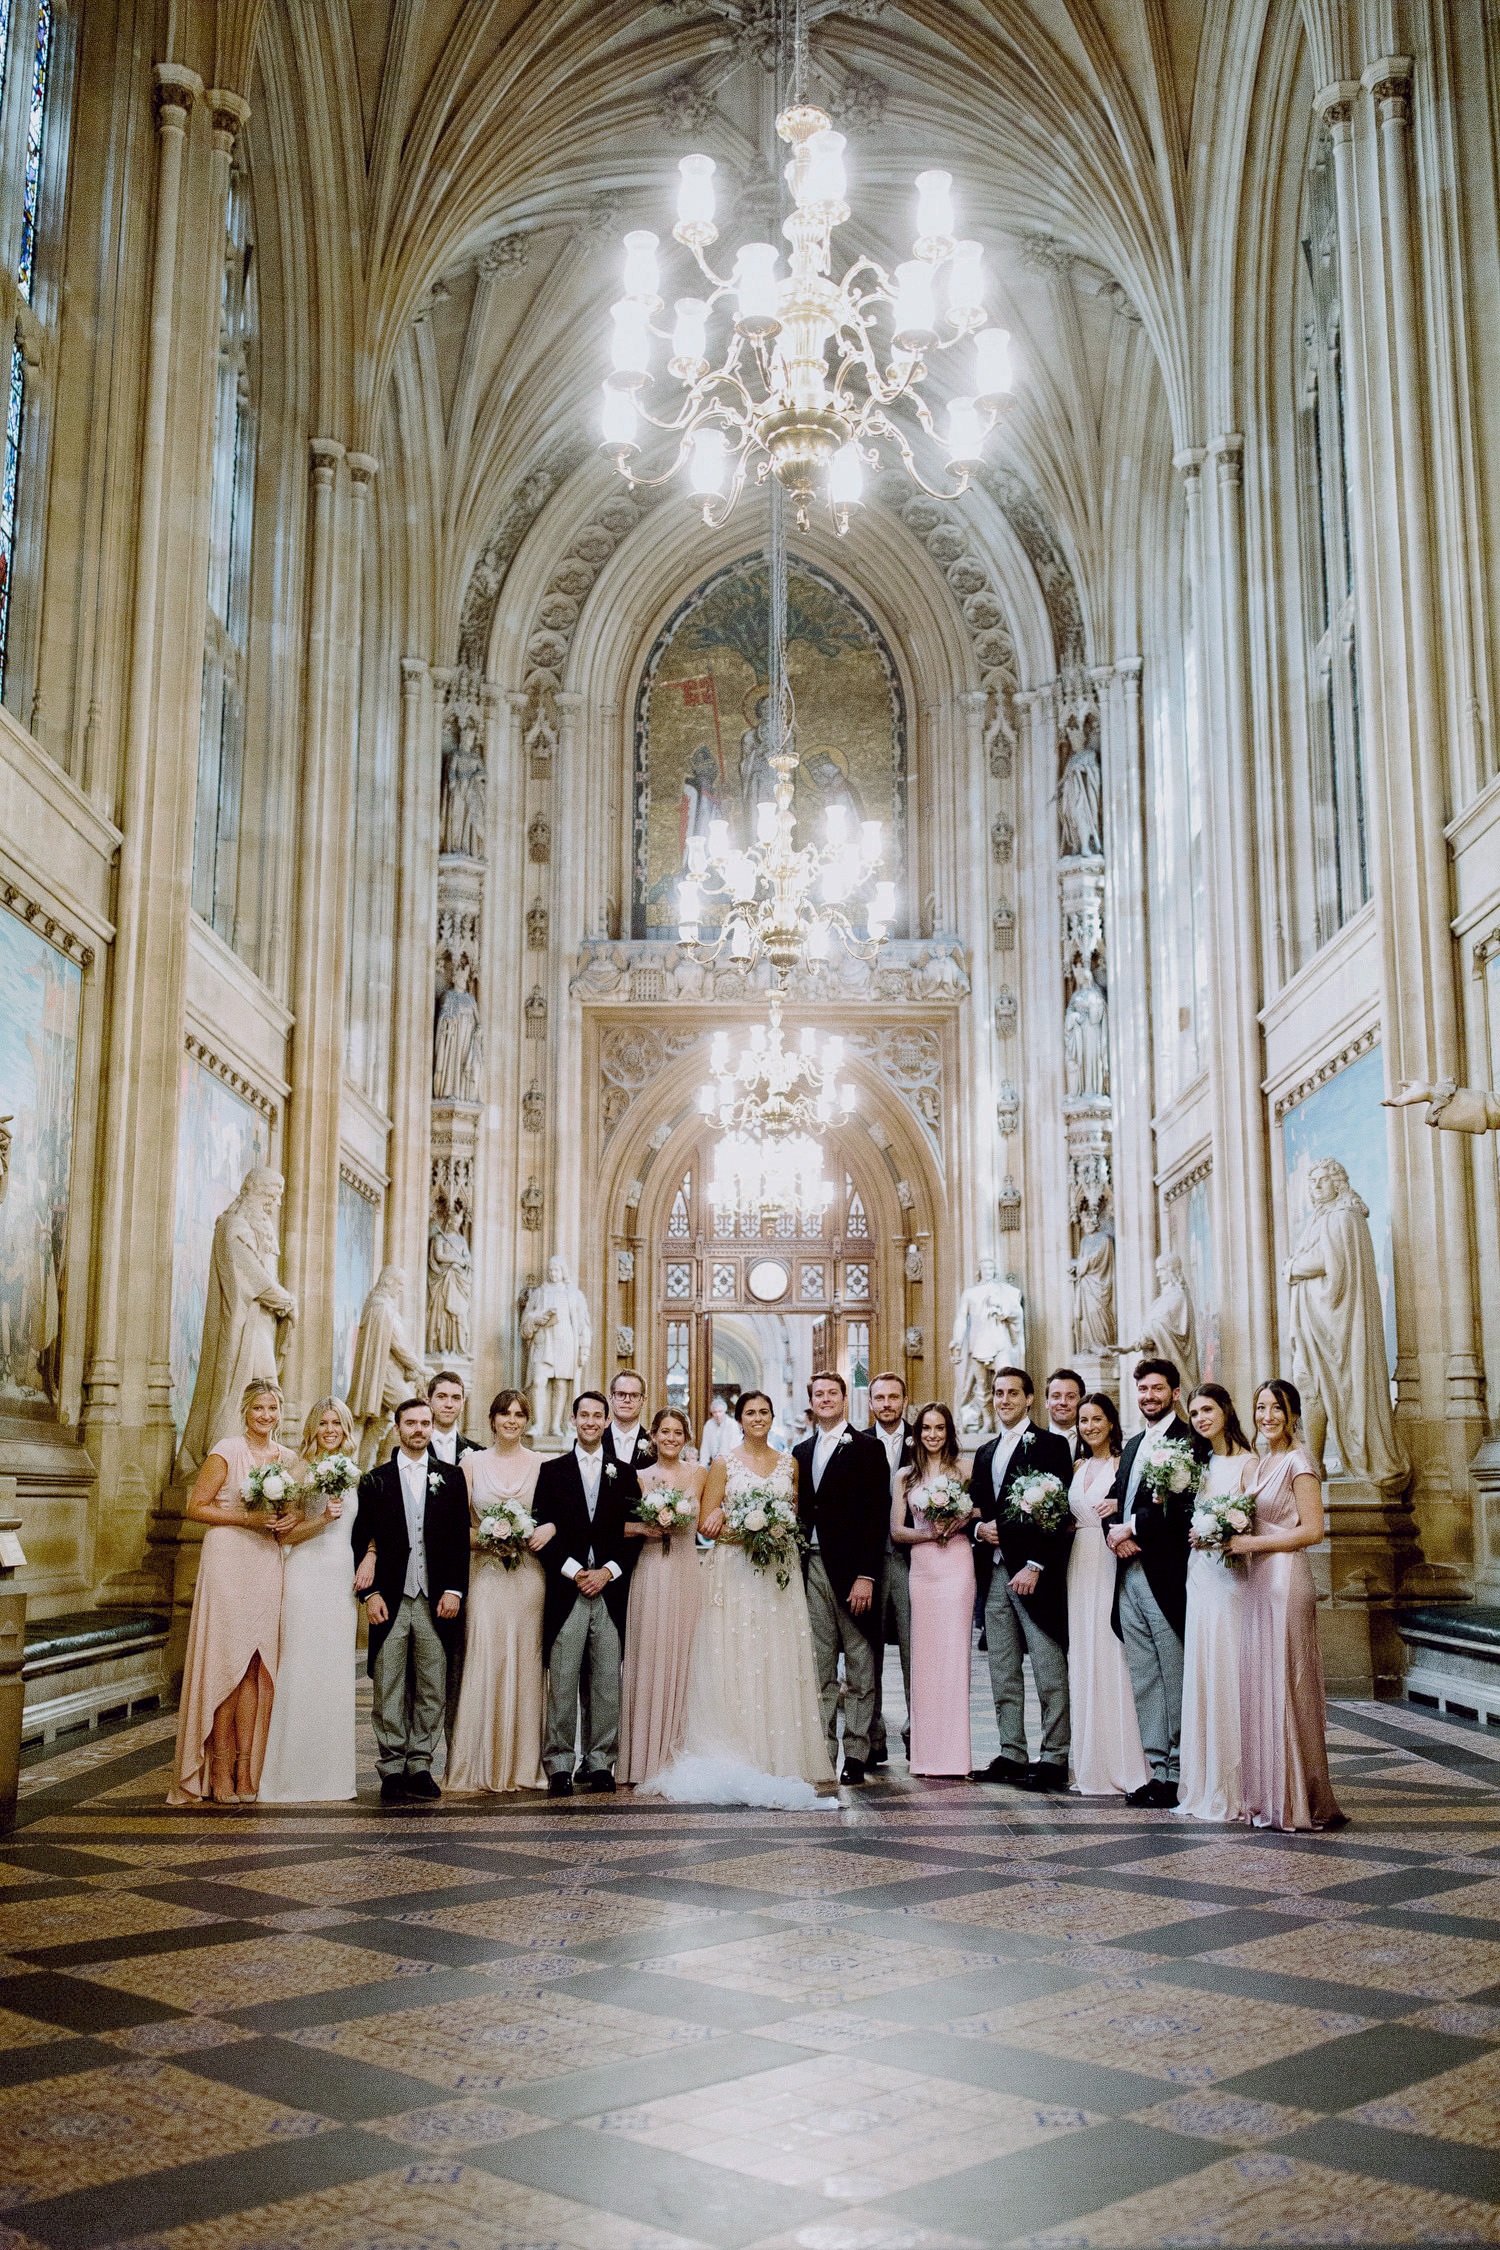 Ushers and bridesmaids in the house of lords